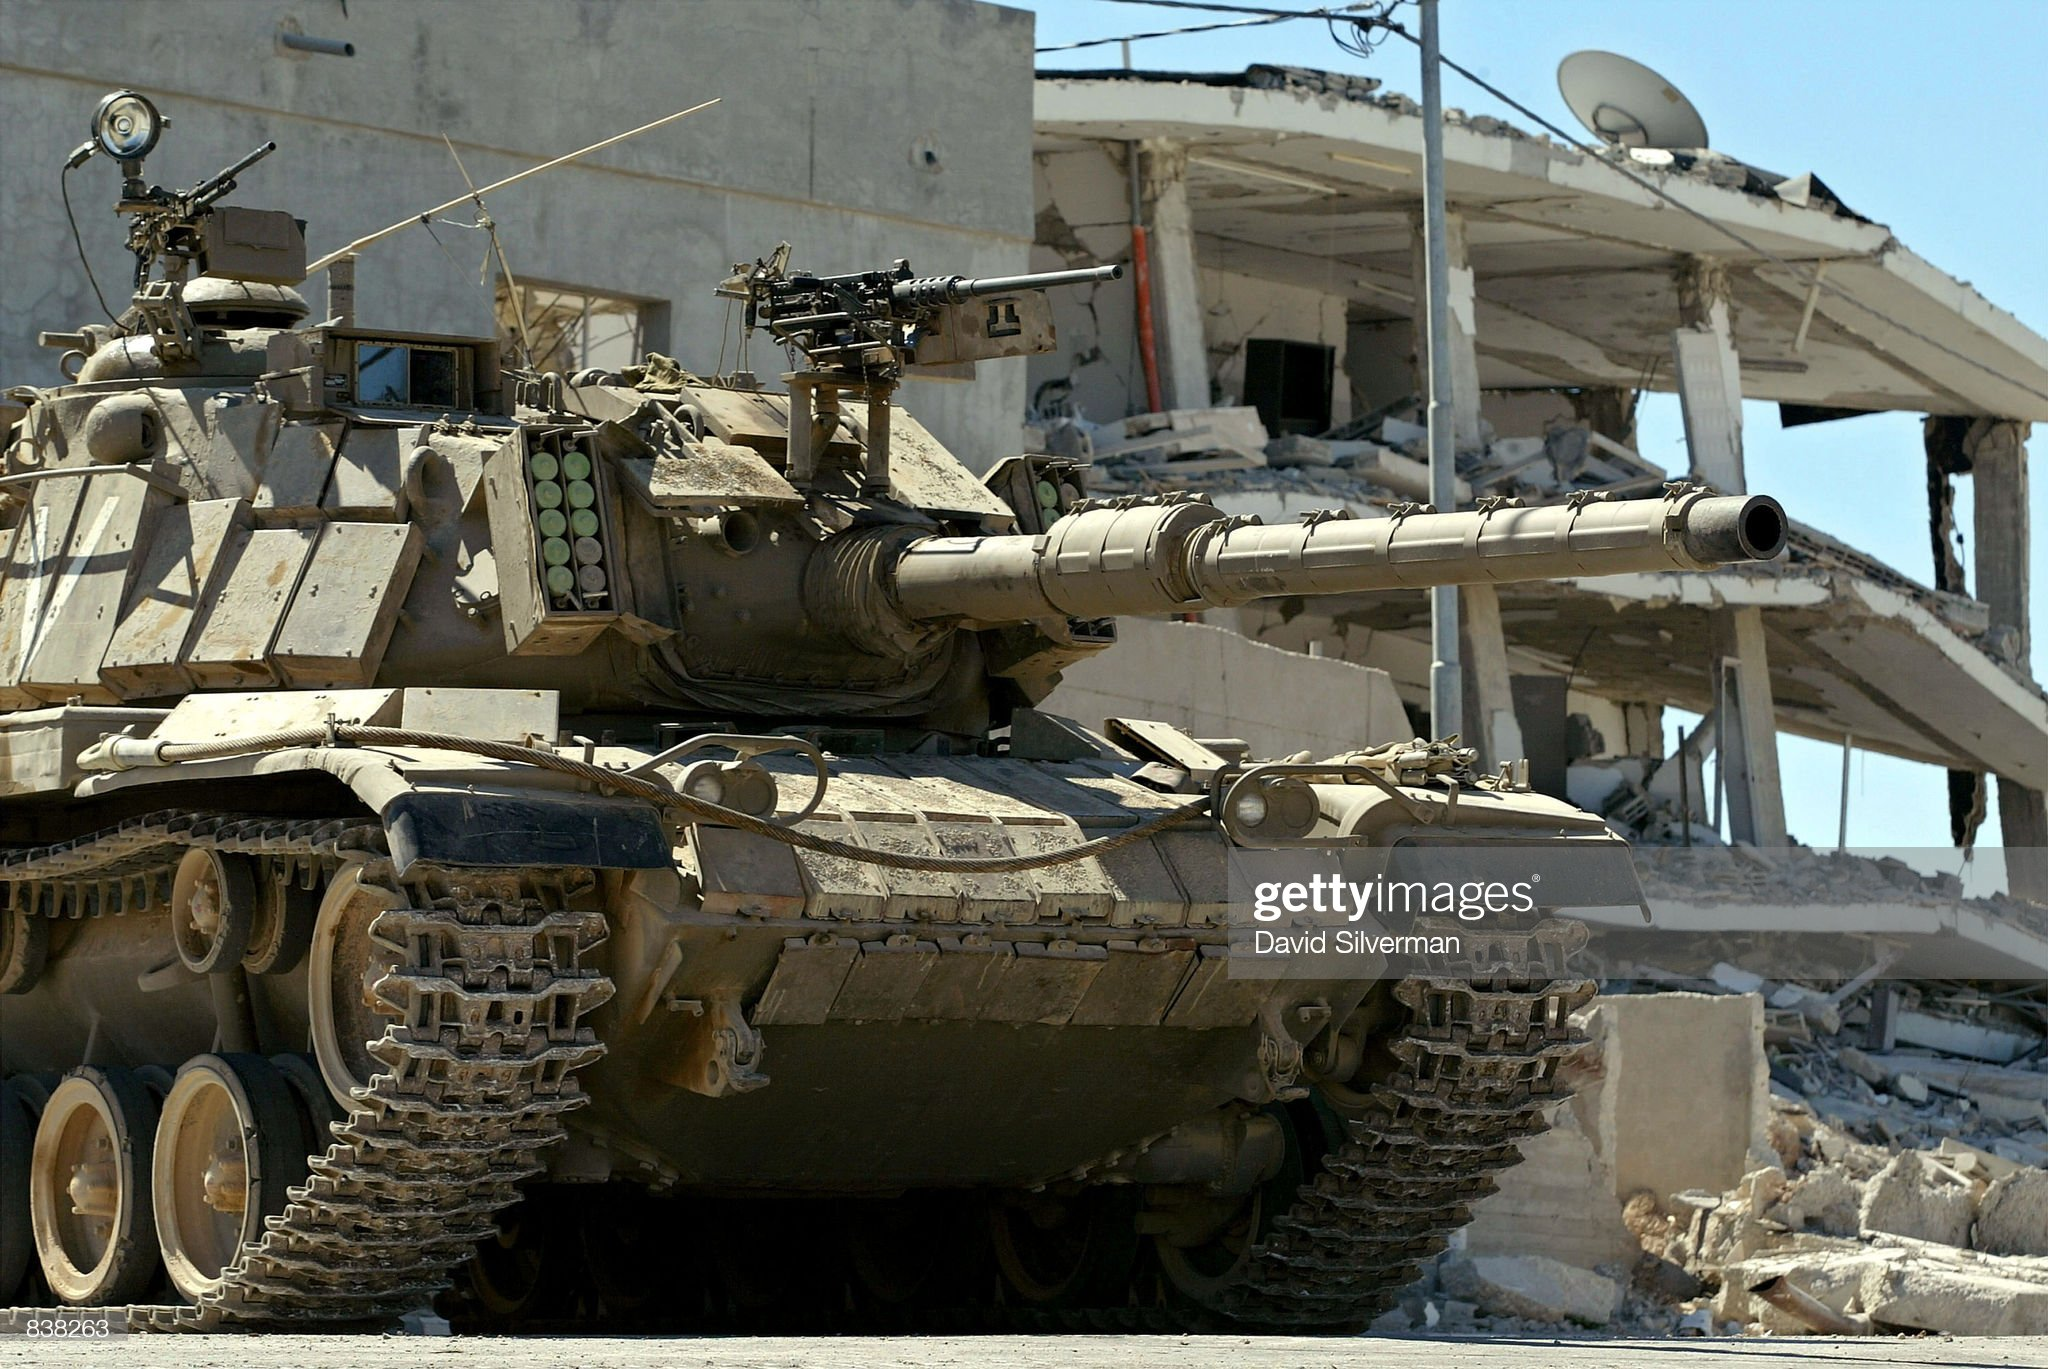 https://media.gettyimages.com/photos/an-israeli-tank-stands-guard-outside-palestinian-leader-yasser-june-picture-id838263?s=2048x2048